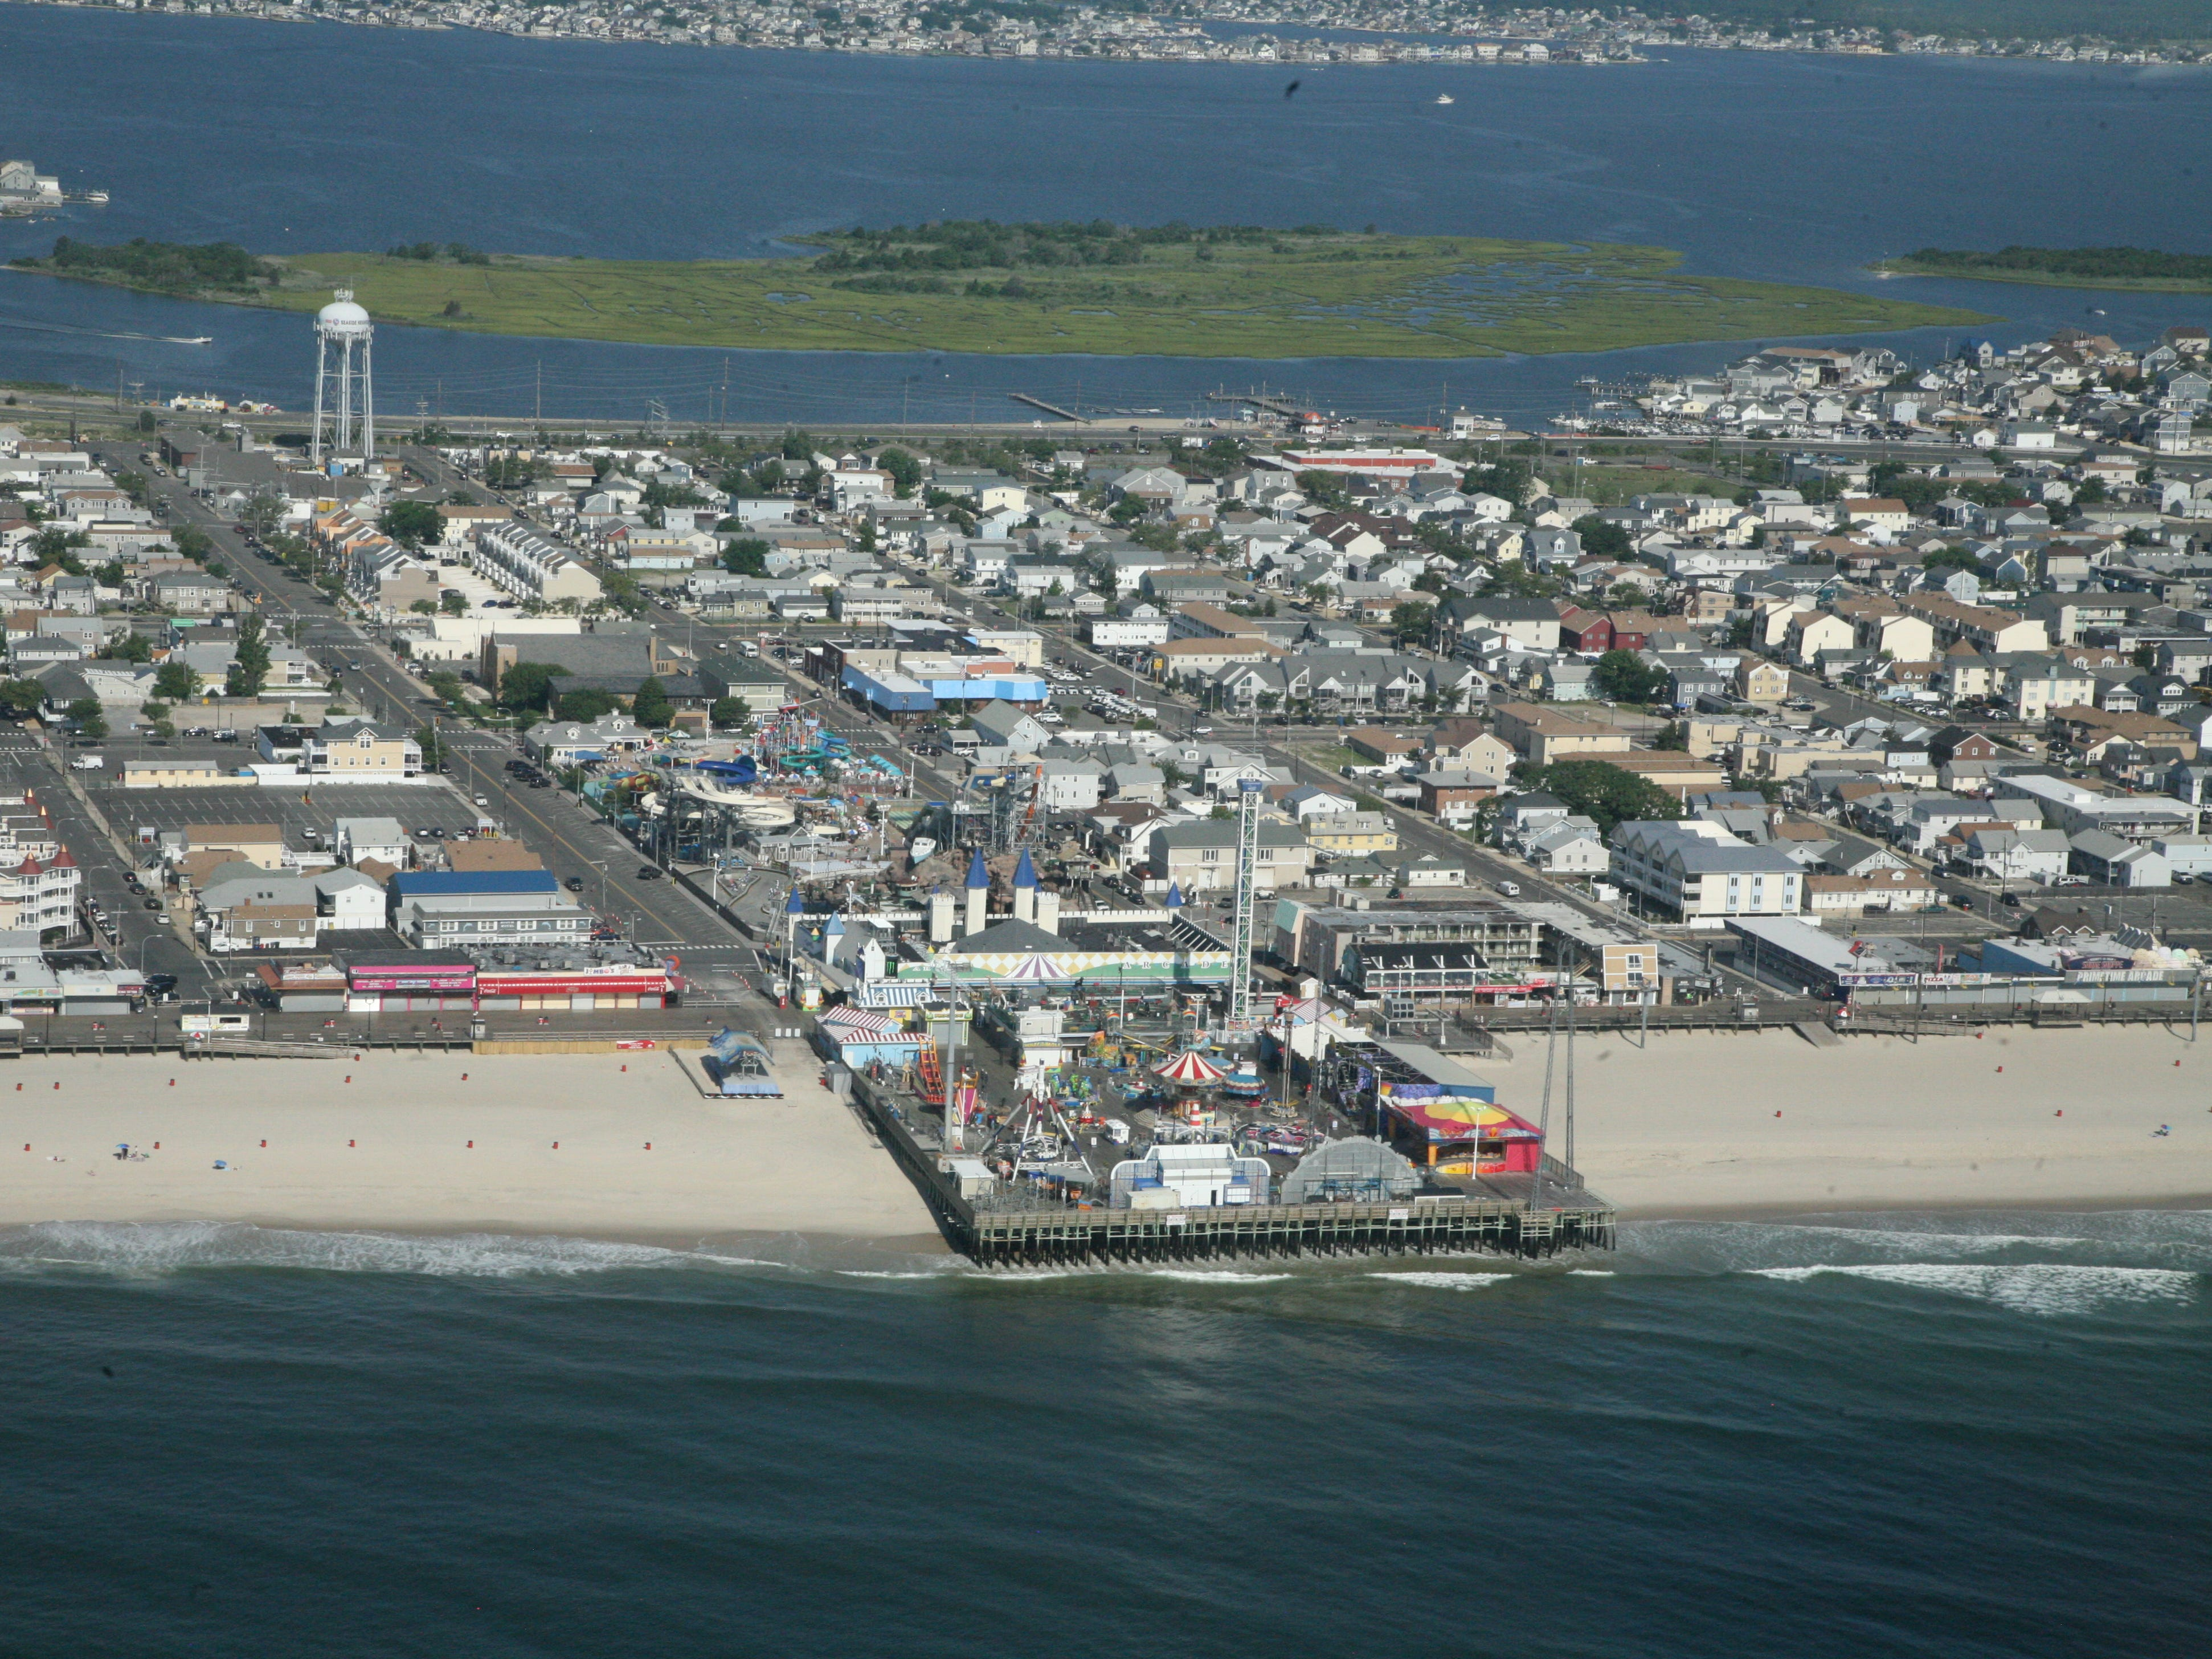 The Seaside Heights boardwalk